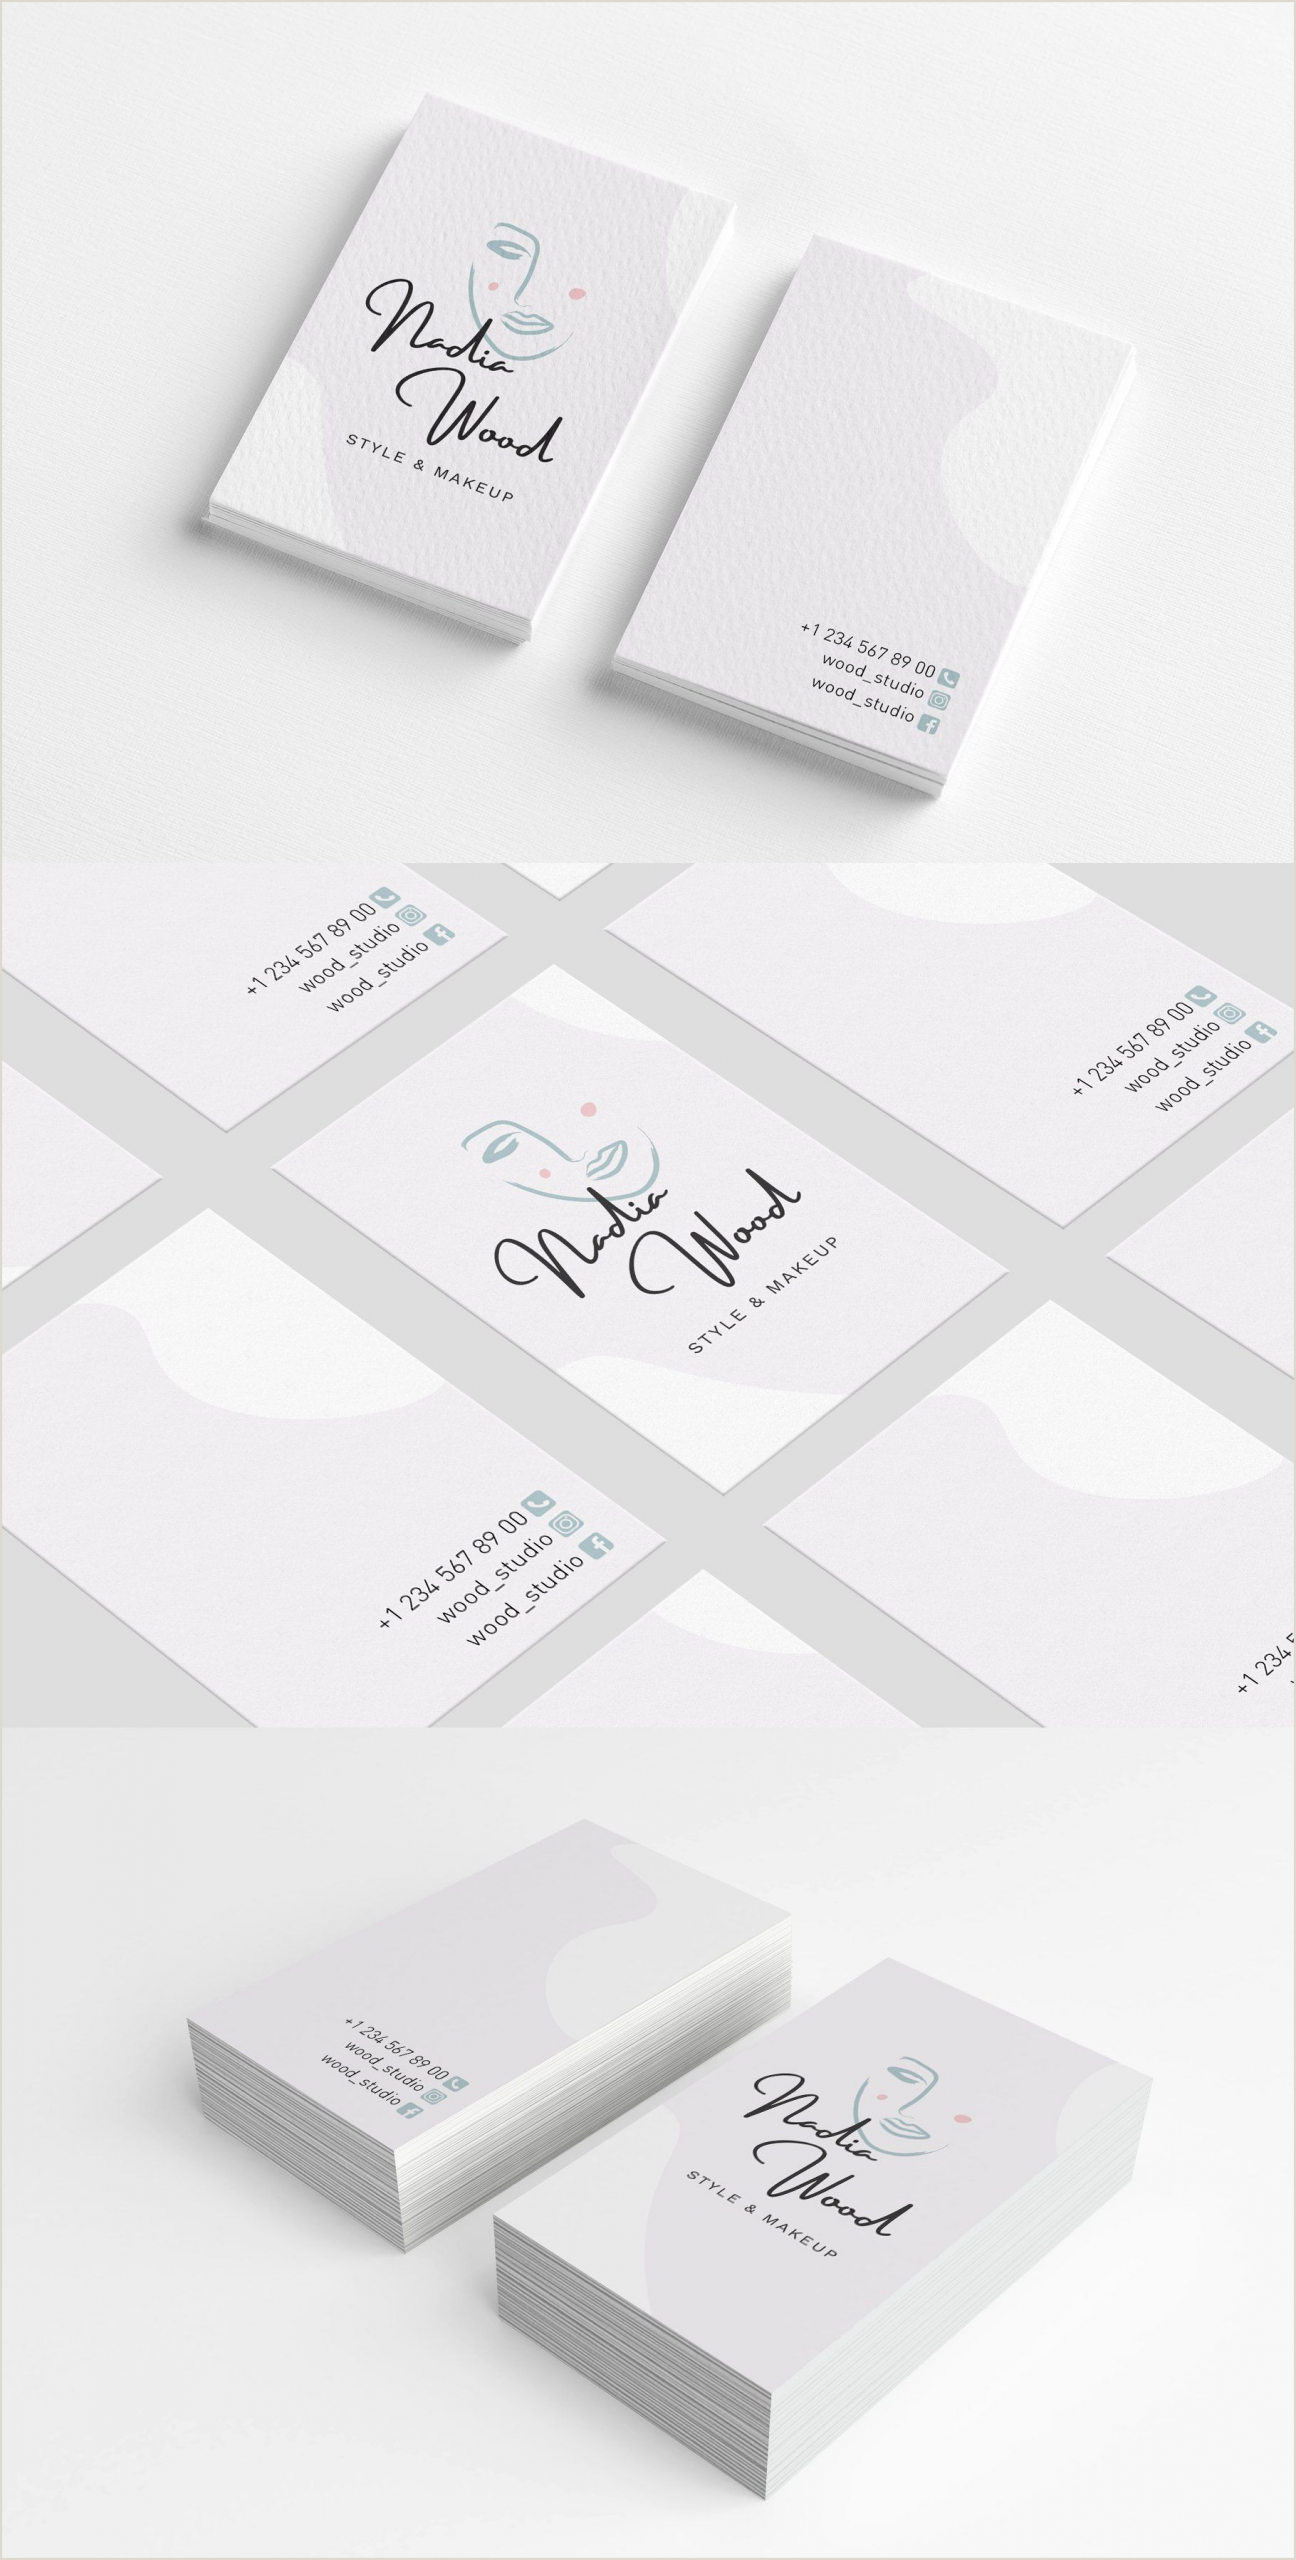 Personal Business Card Designs Style & Makeup Artist Business Card In 2020